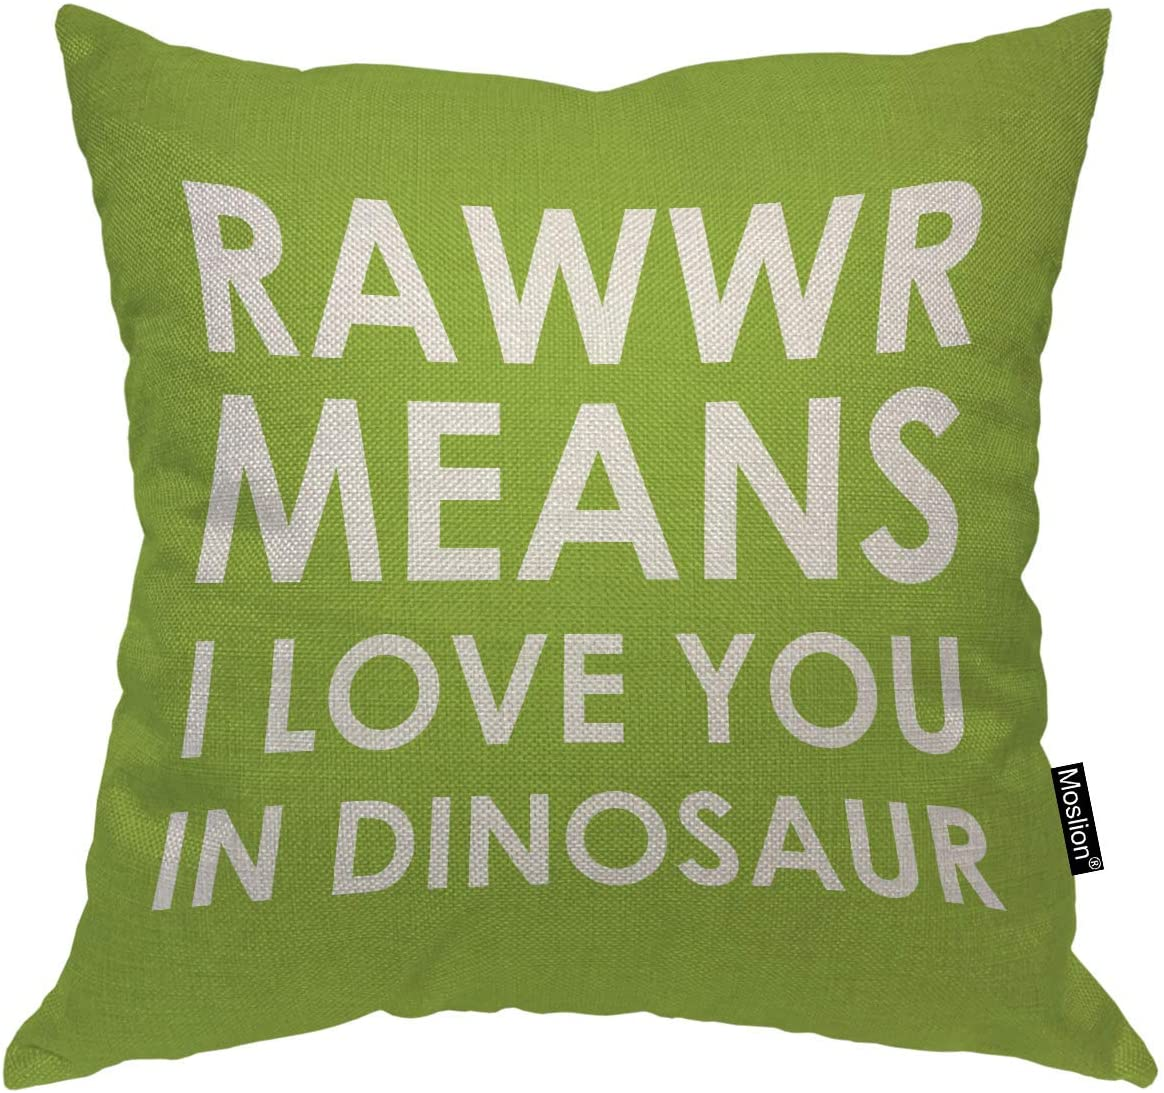 Moslion Throw Pillow Cover Rawwr Means I Love You in Dinosaur 18x18 Inch Funny Cute Phrase Green White Square Pillow Case Cushion Cover for Home Car Decorative Cotton Linen